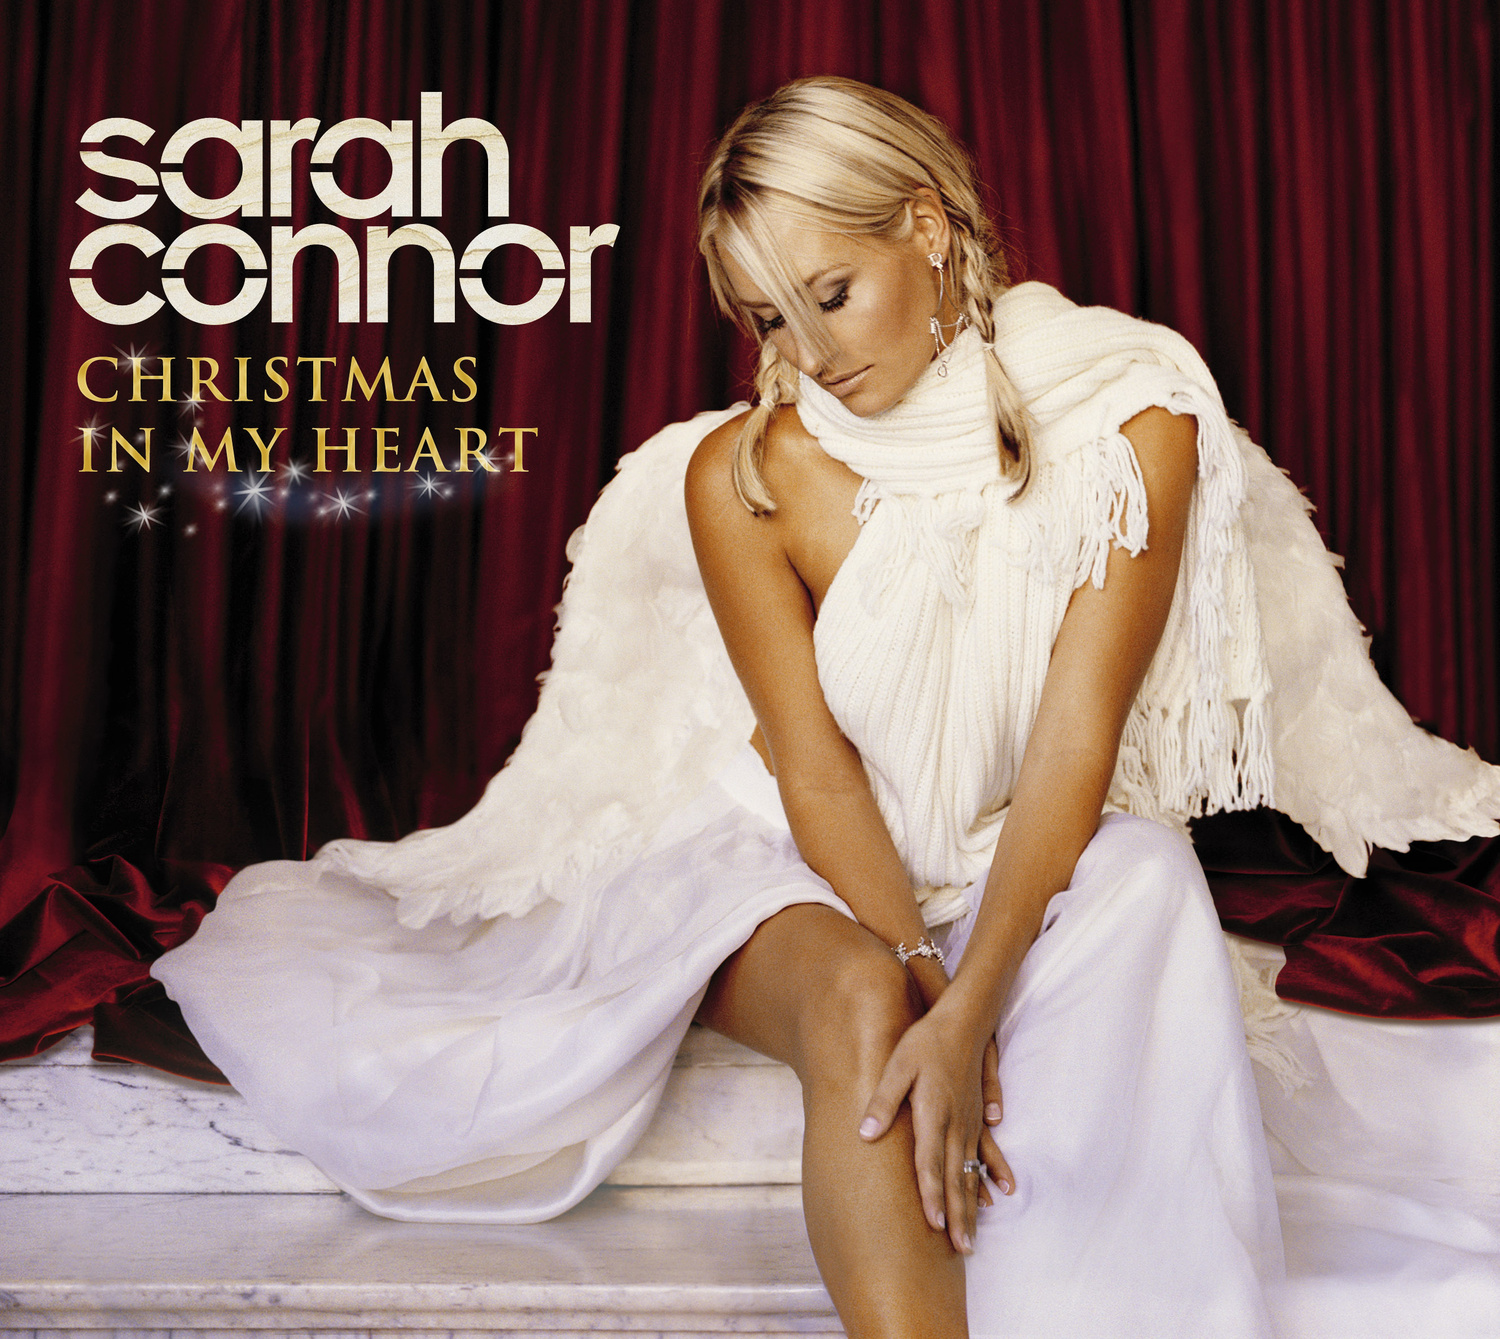 Sarah Connor - Christmas in My Heart (Re-Release)